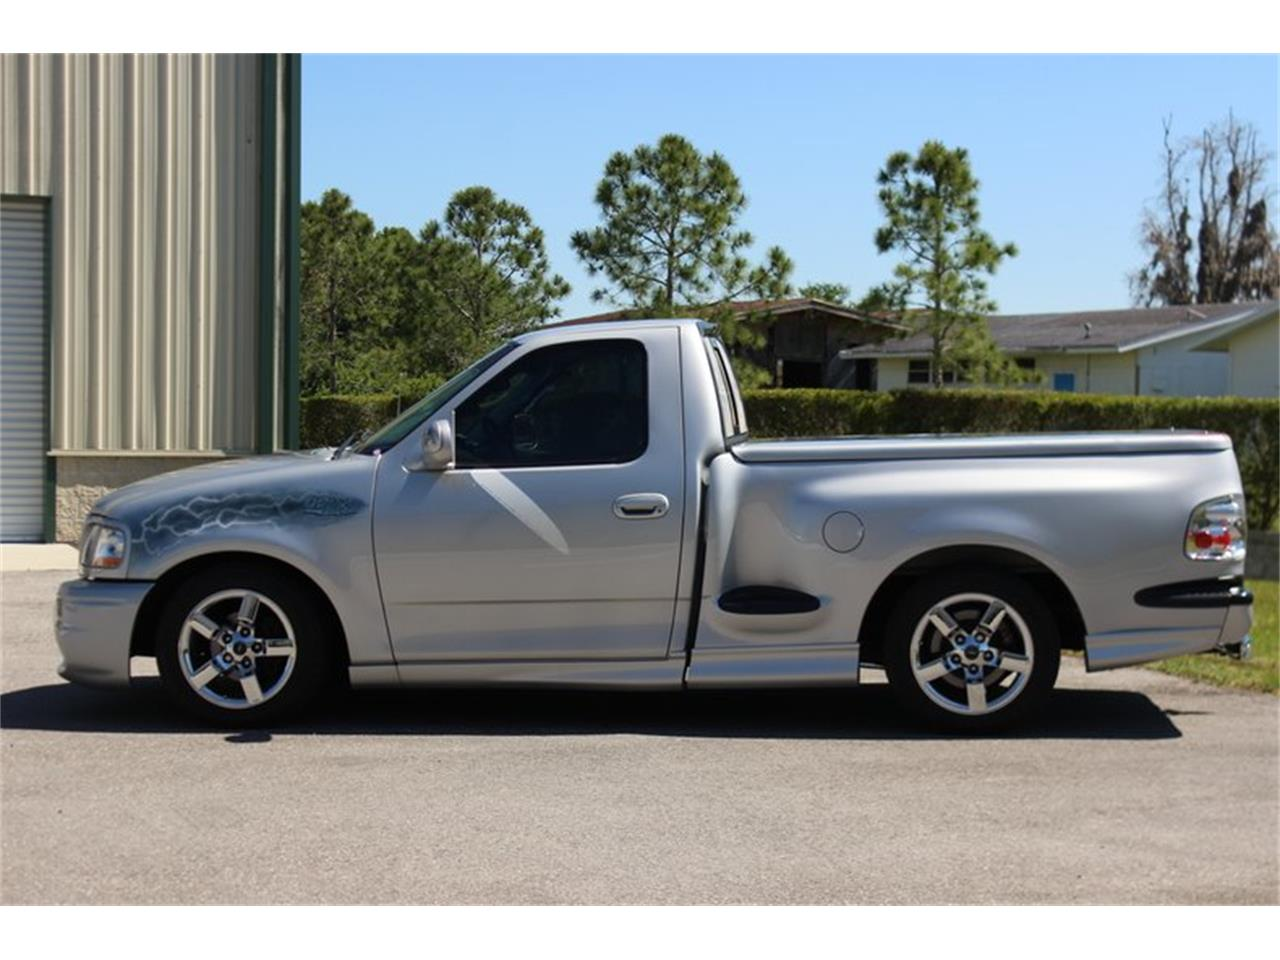 2002 Ford Lightning for sale in Palmetto, FL – photo 46